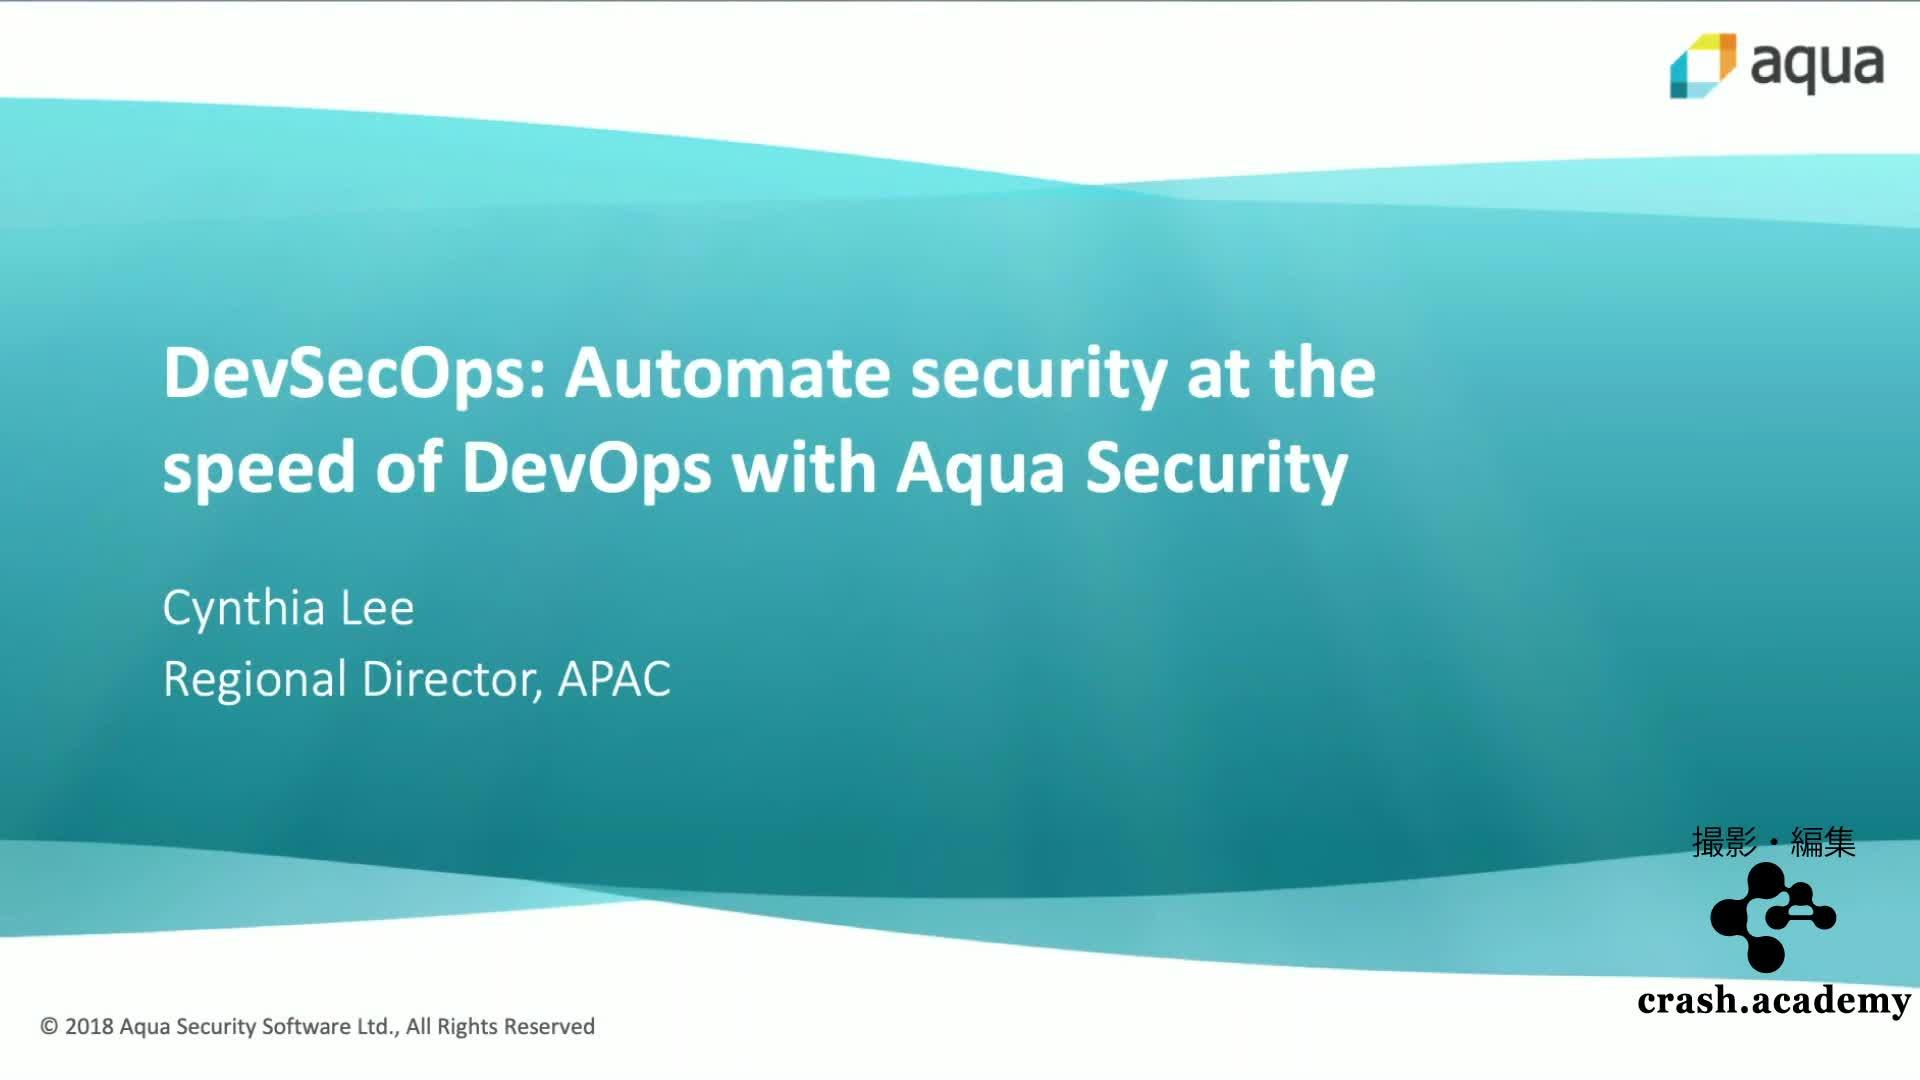 DevSecOps:Automate security at the speed of DevOps with Aqua Security